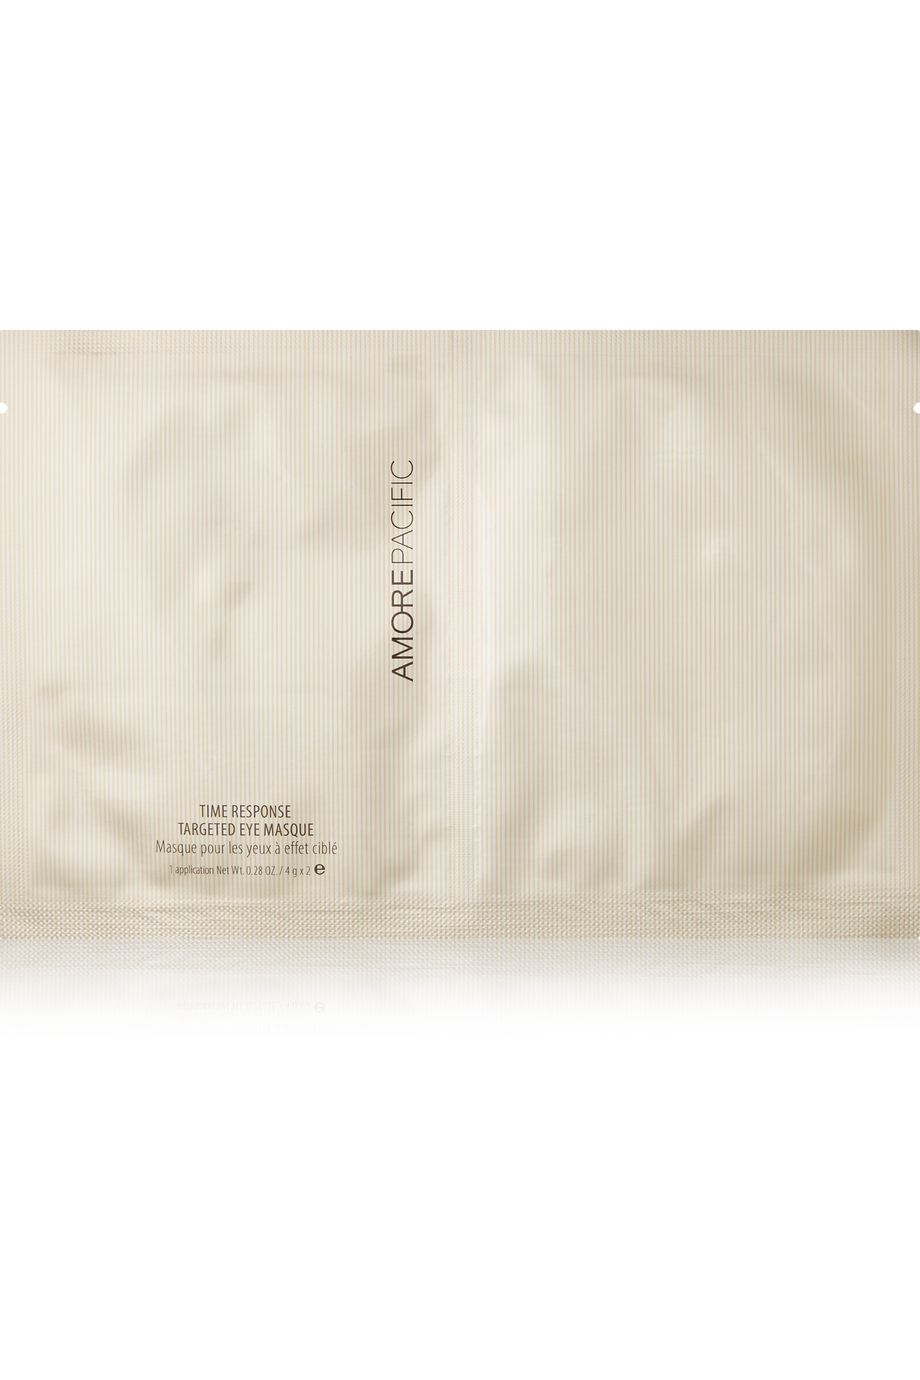 AMOREPACIFIC Time Response Targeted Eye Masque x 16